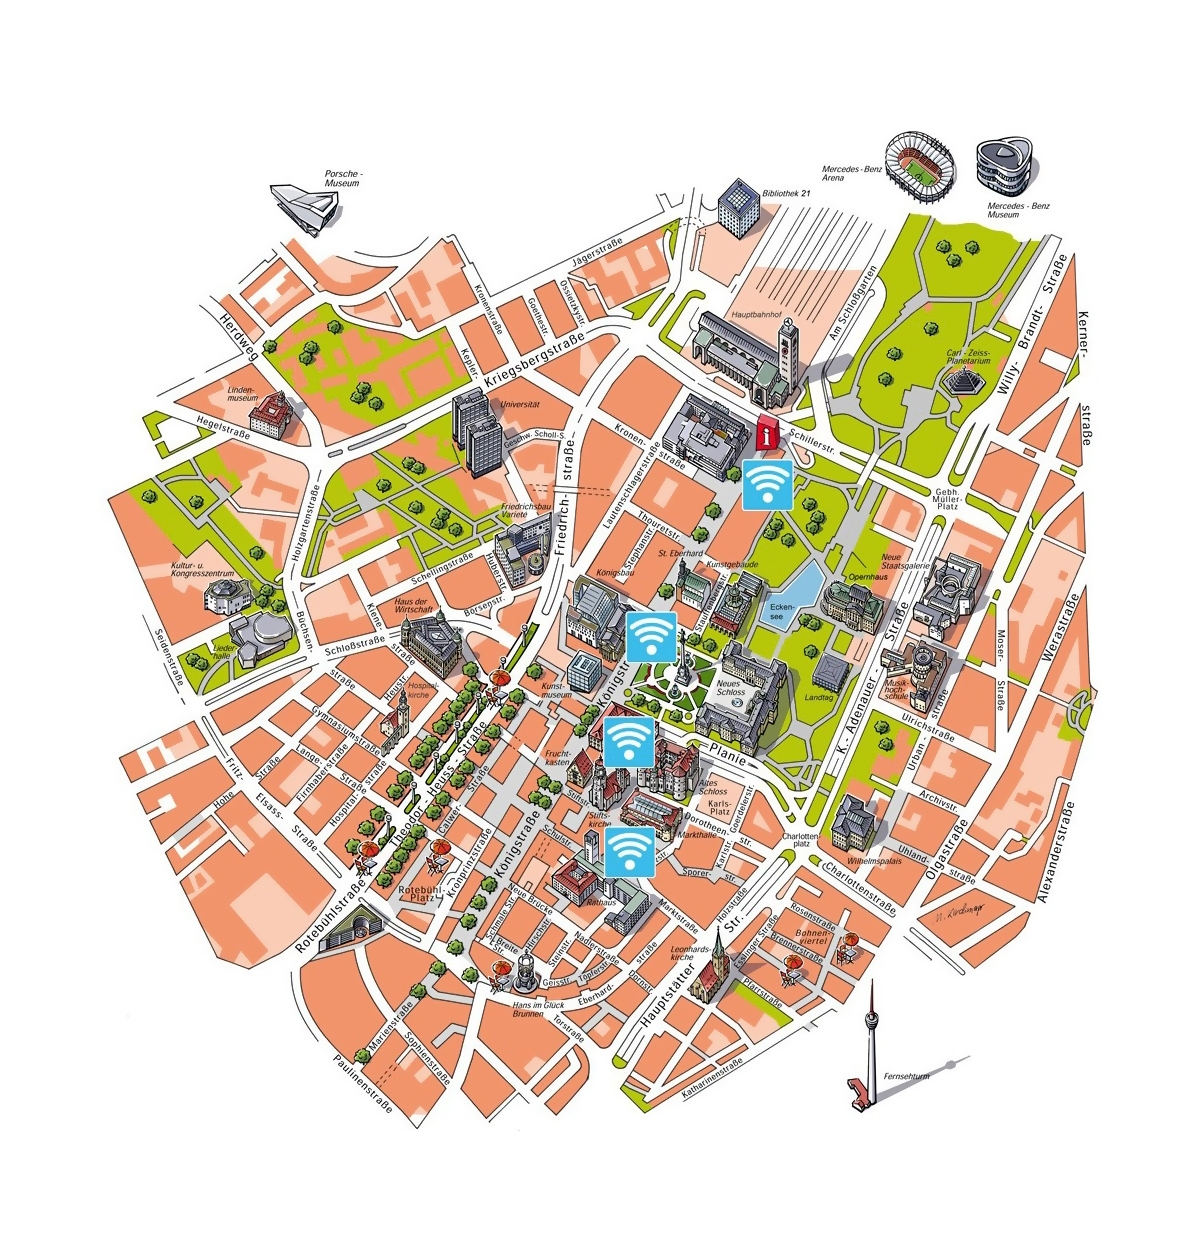 Detailed Free Wifi Map Of Central Part Of Stuttgart City   Stuttgart with regard to Free Wifi Map Germany